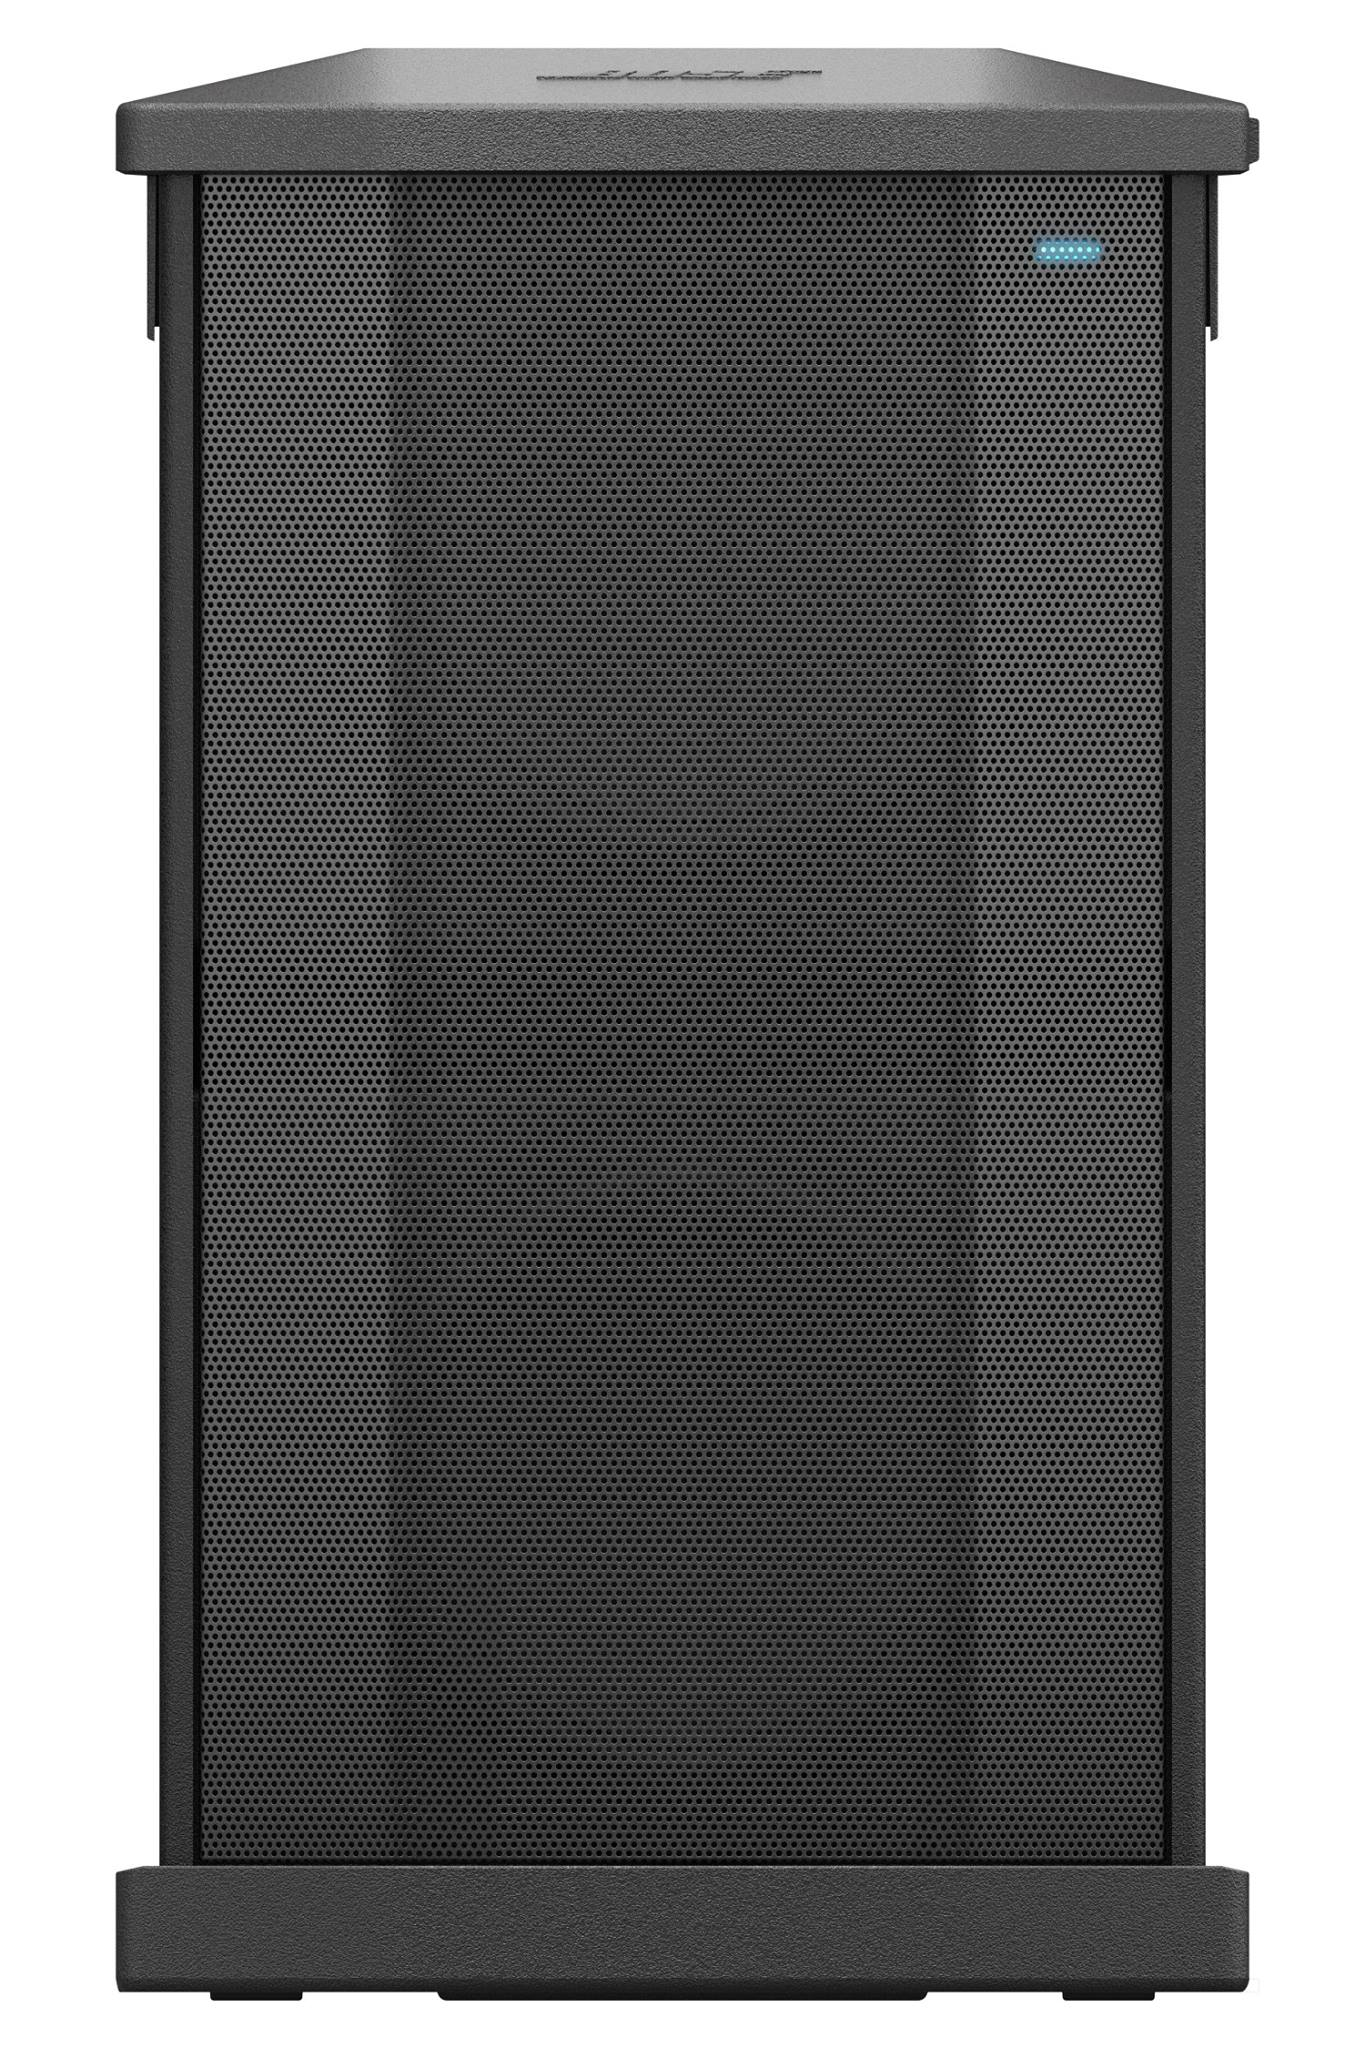 F1 Model 812 Flexible Array Loudspeaker - Bose Pro Portable PA ...